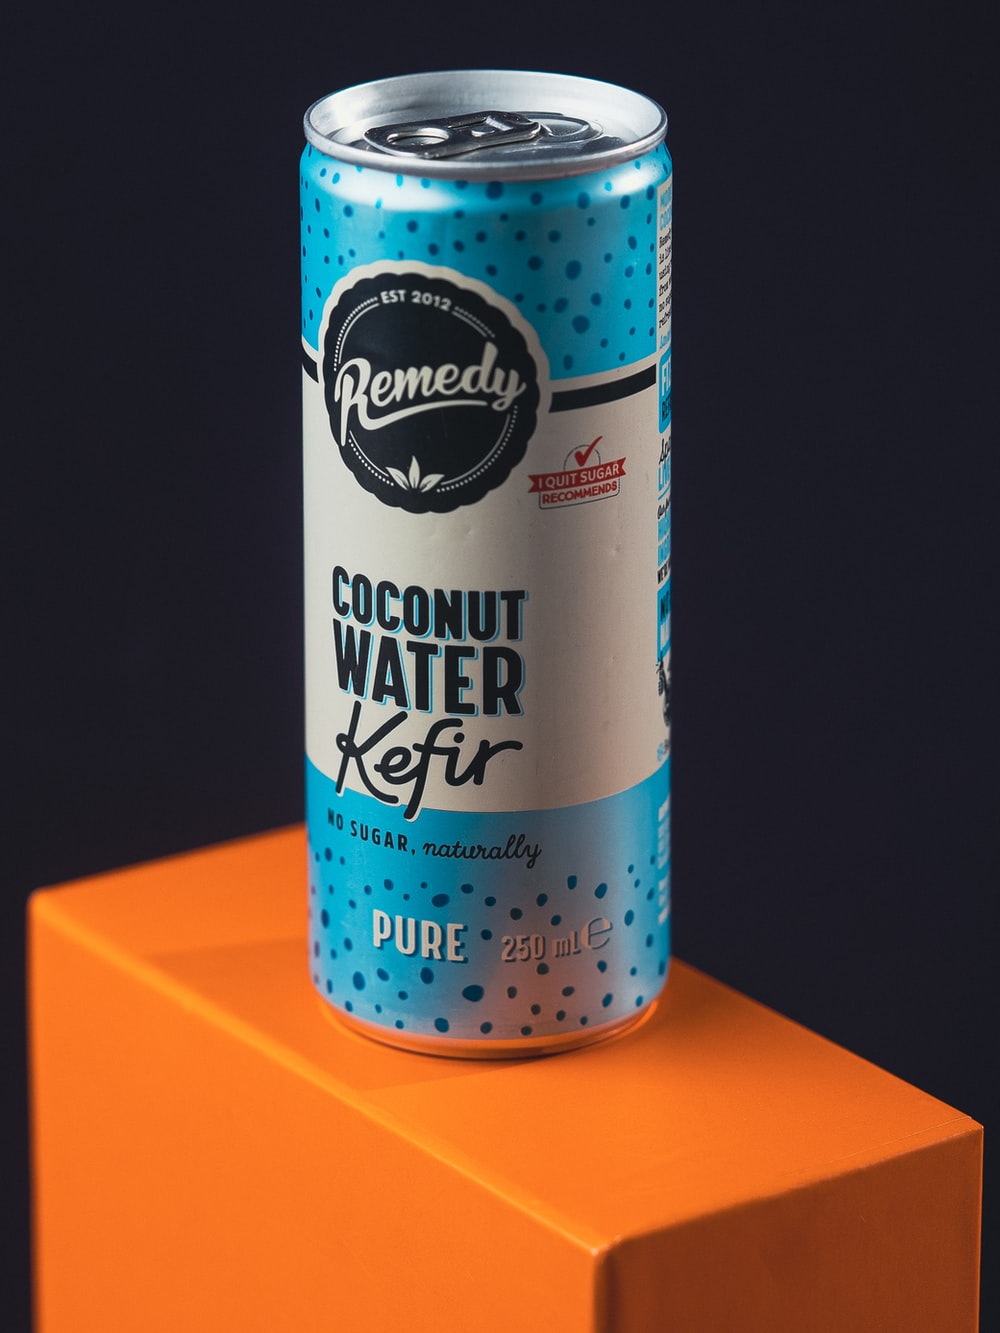 red and white can on orange surface